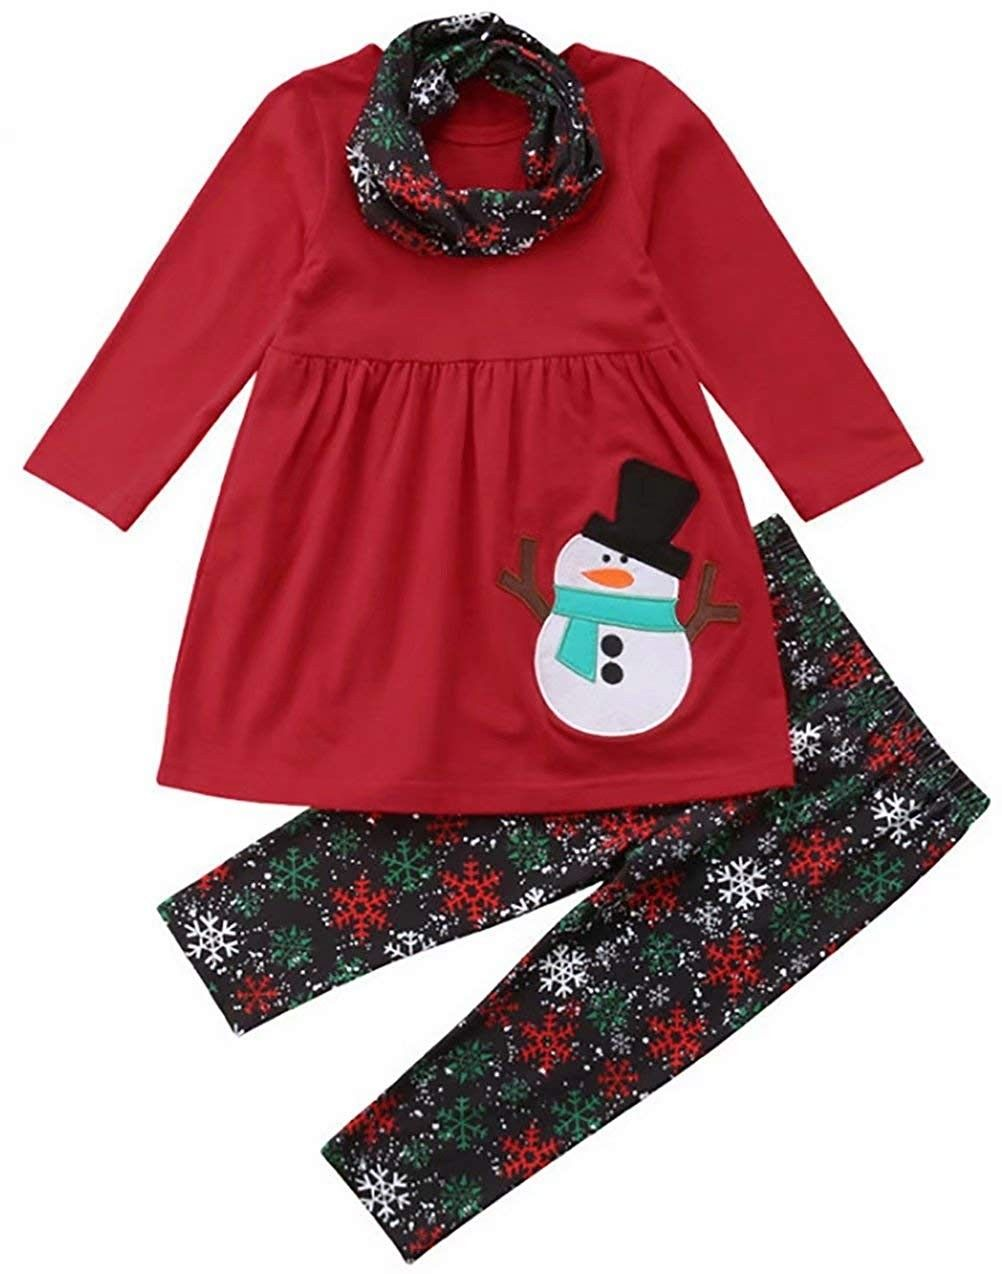 Santa pictures school party Christmas party Snowflake Reindeer Ruffle Style Short or Long Sleeve T-shirt Christmas gift